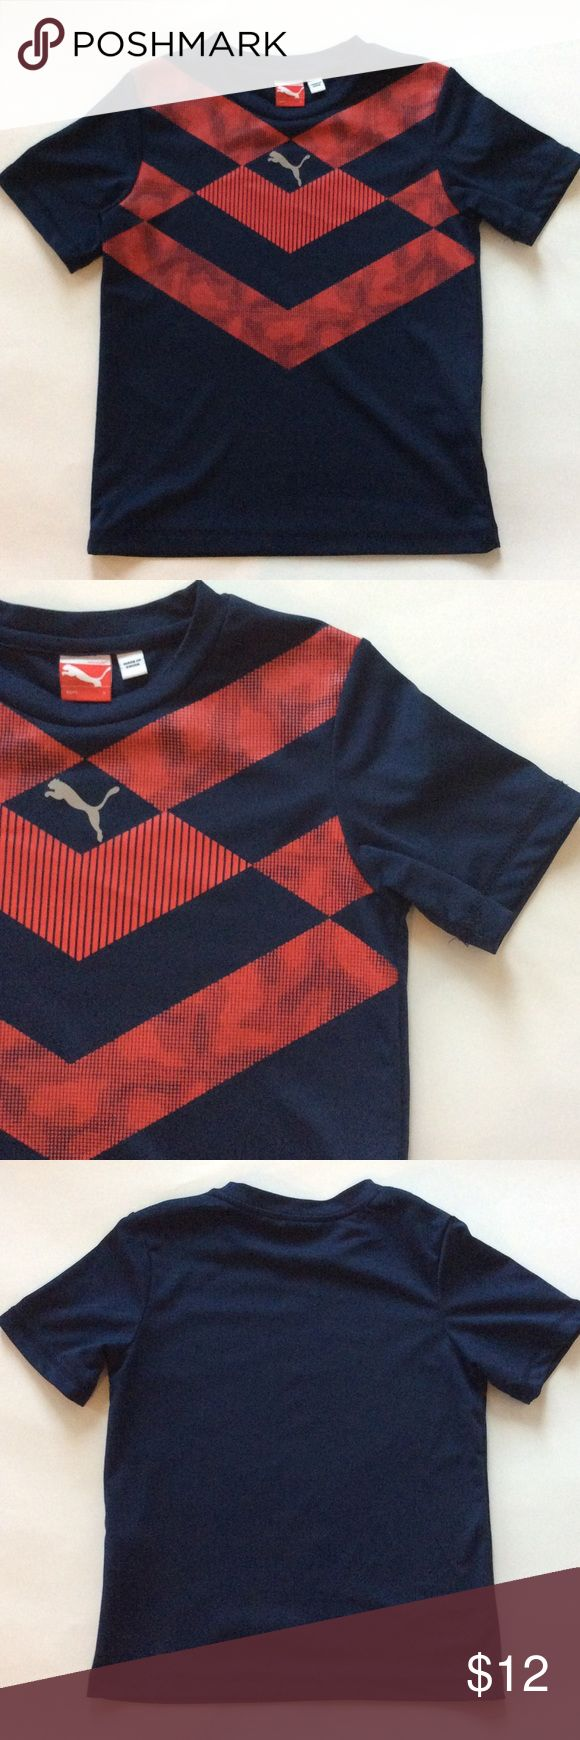 👫Puma Sports Tee Puma Sports Tee. Navy and red. Dri fit type of material . 100% polyester. Size 6. Excellent condition. Puma Shirts & Tops Tees - Short Sleeve